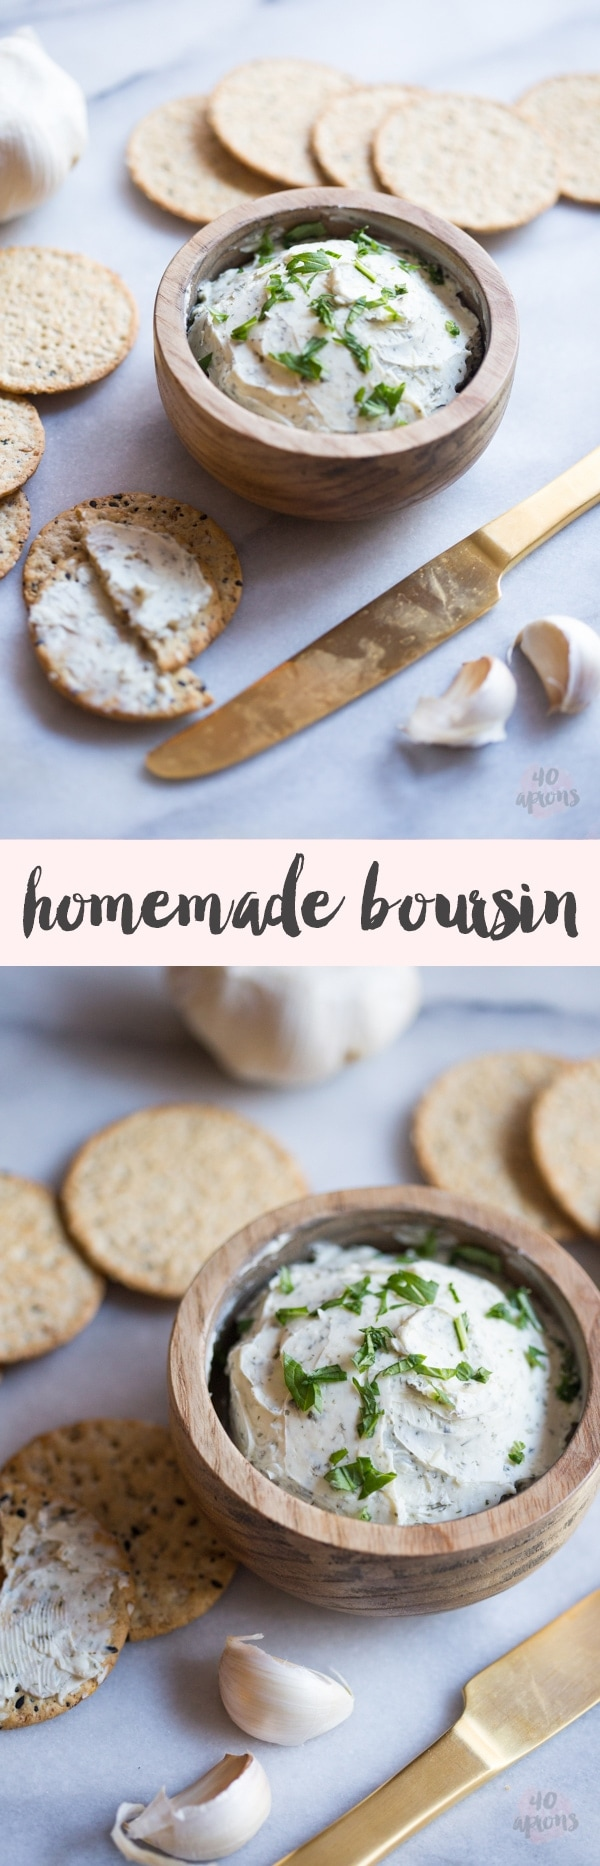 Homemade Boursin: 5 ingredients, so easy, totally delicious.